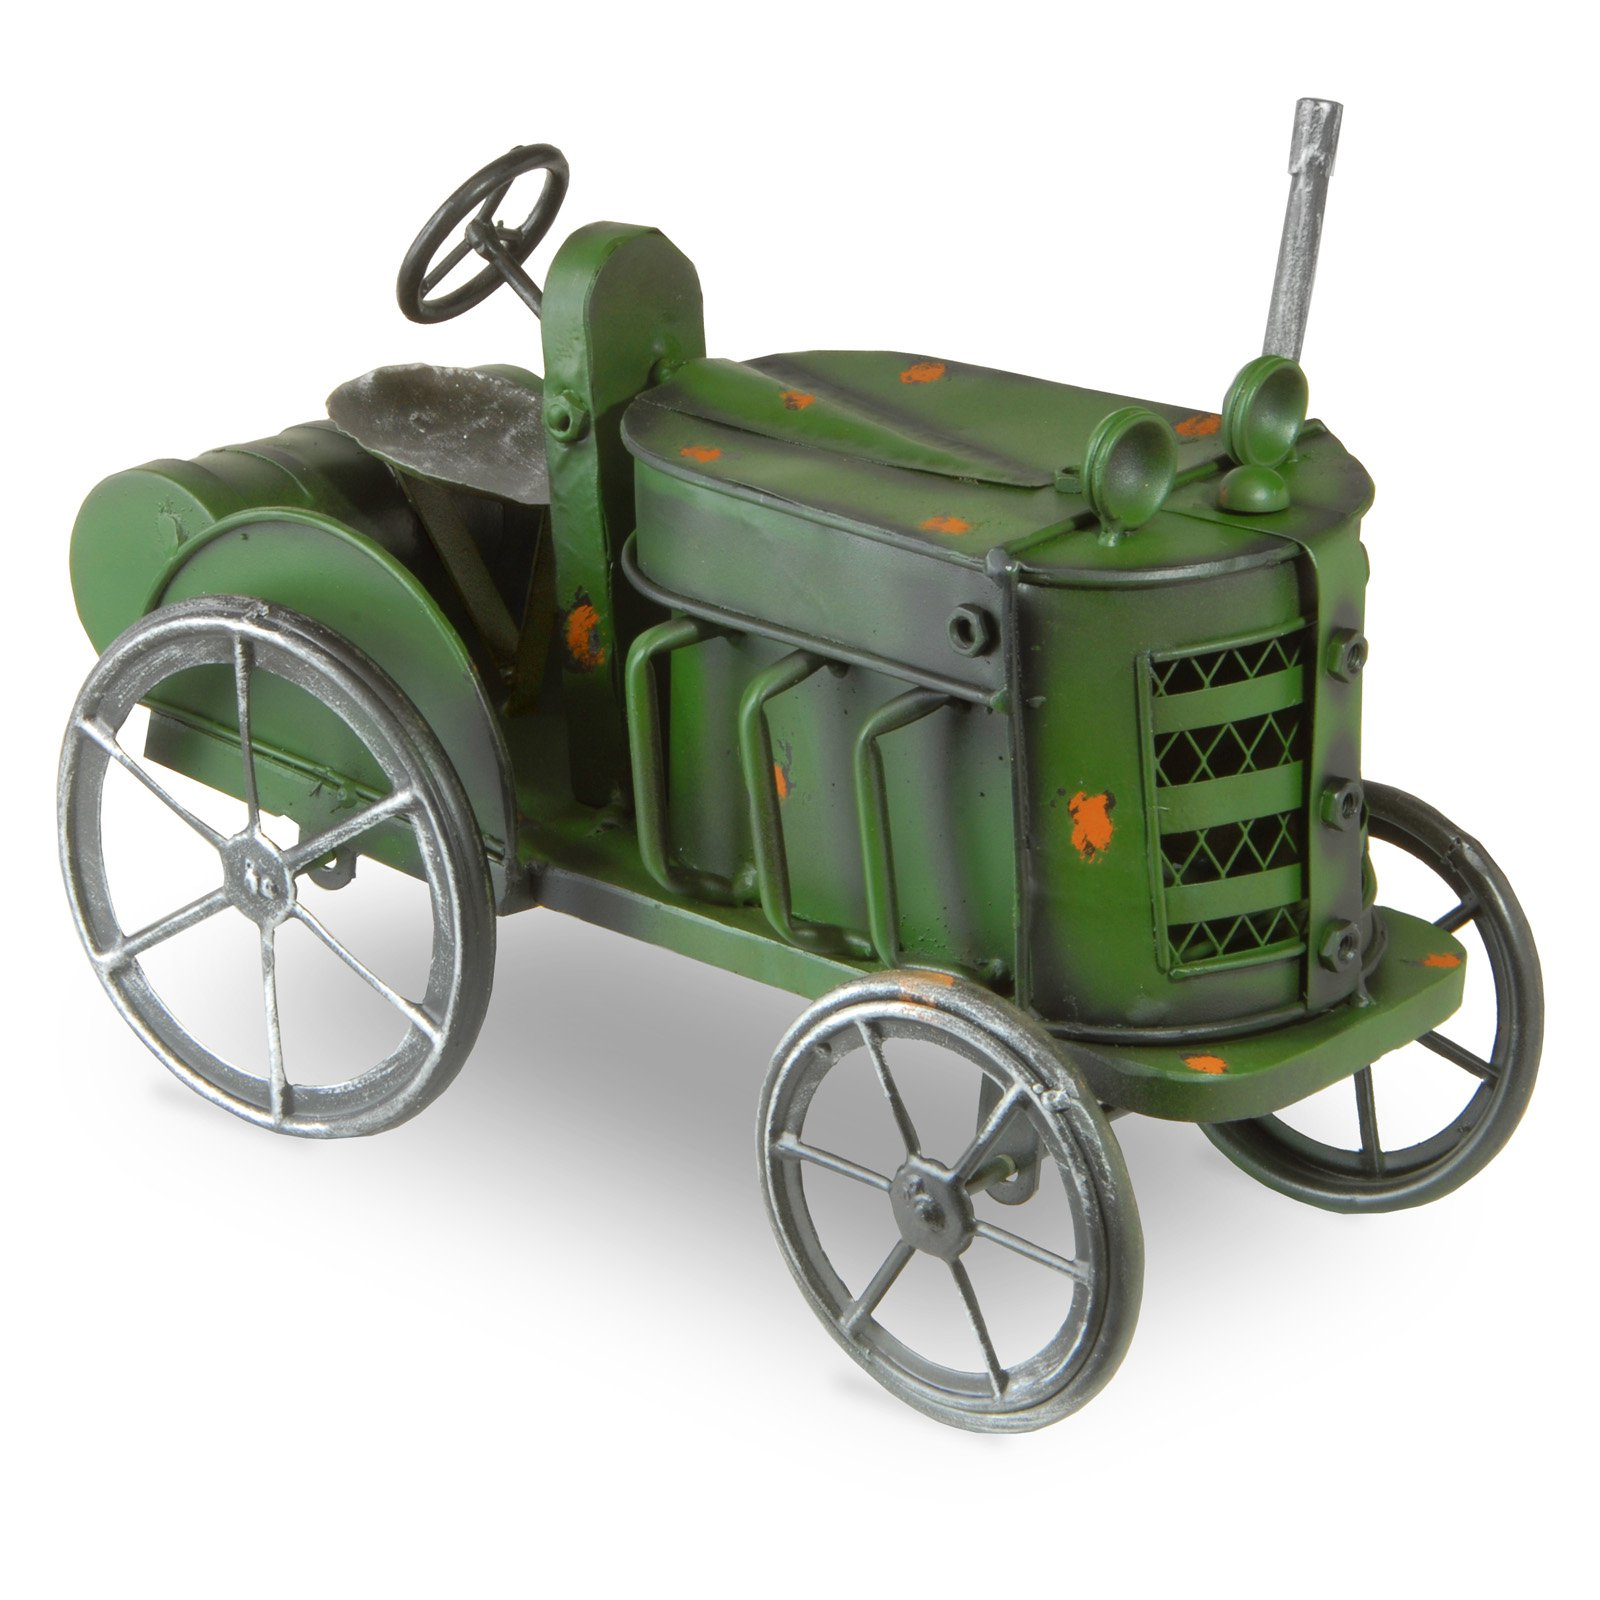 "14"" Metal Tractor Lawn Ornament"